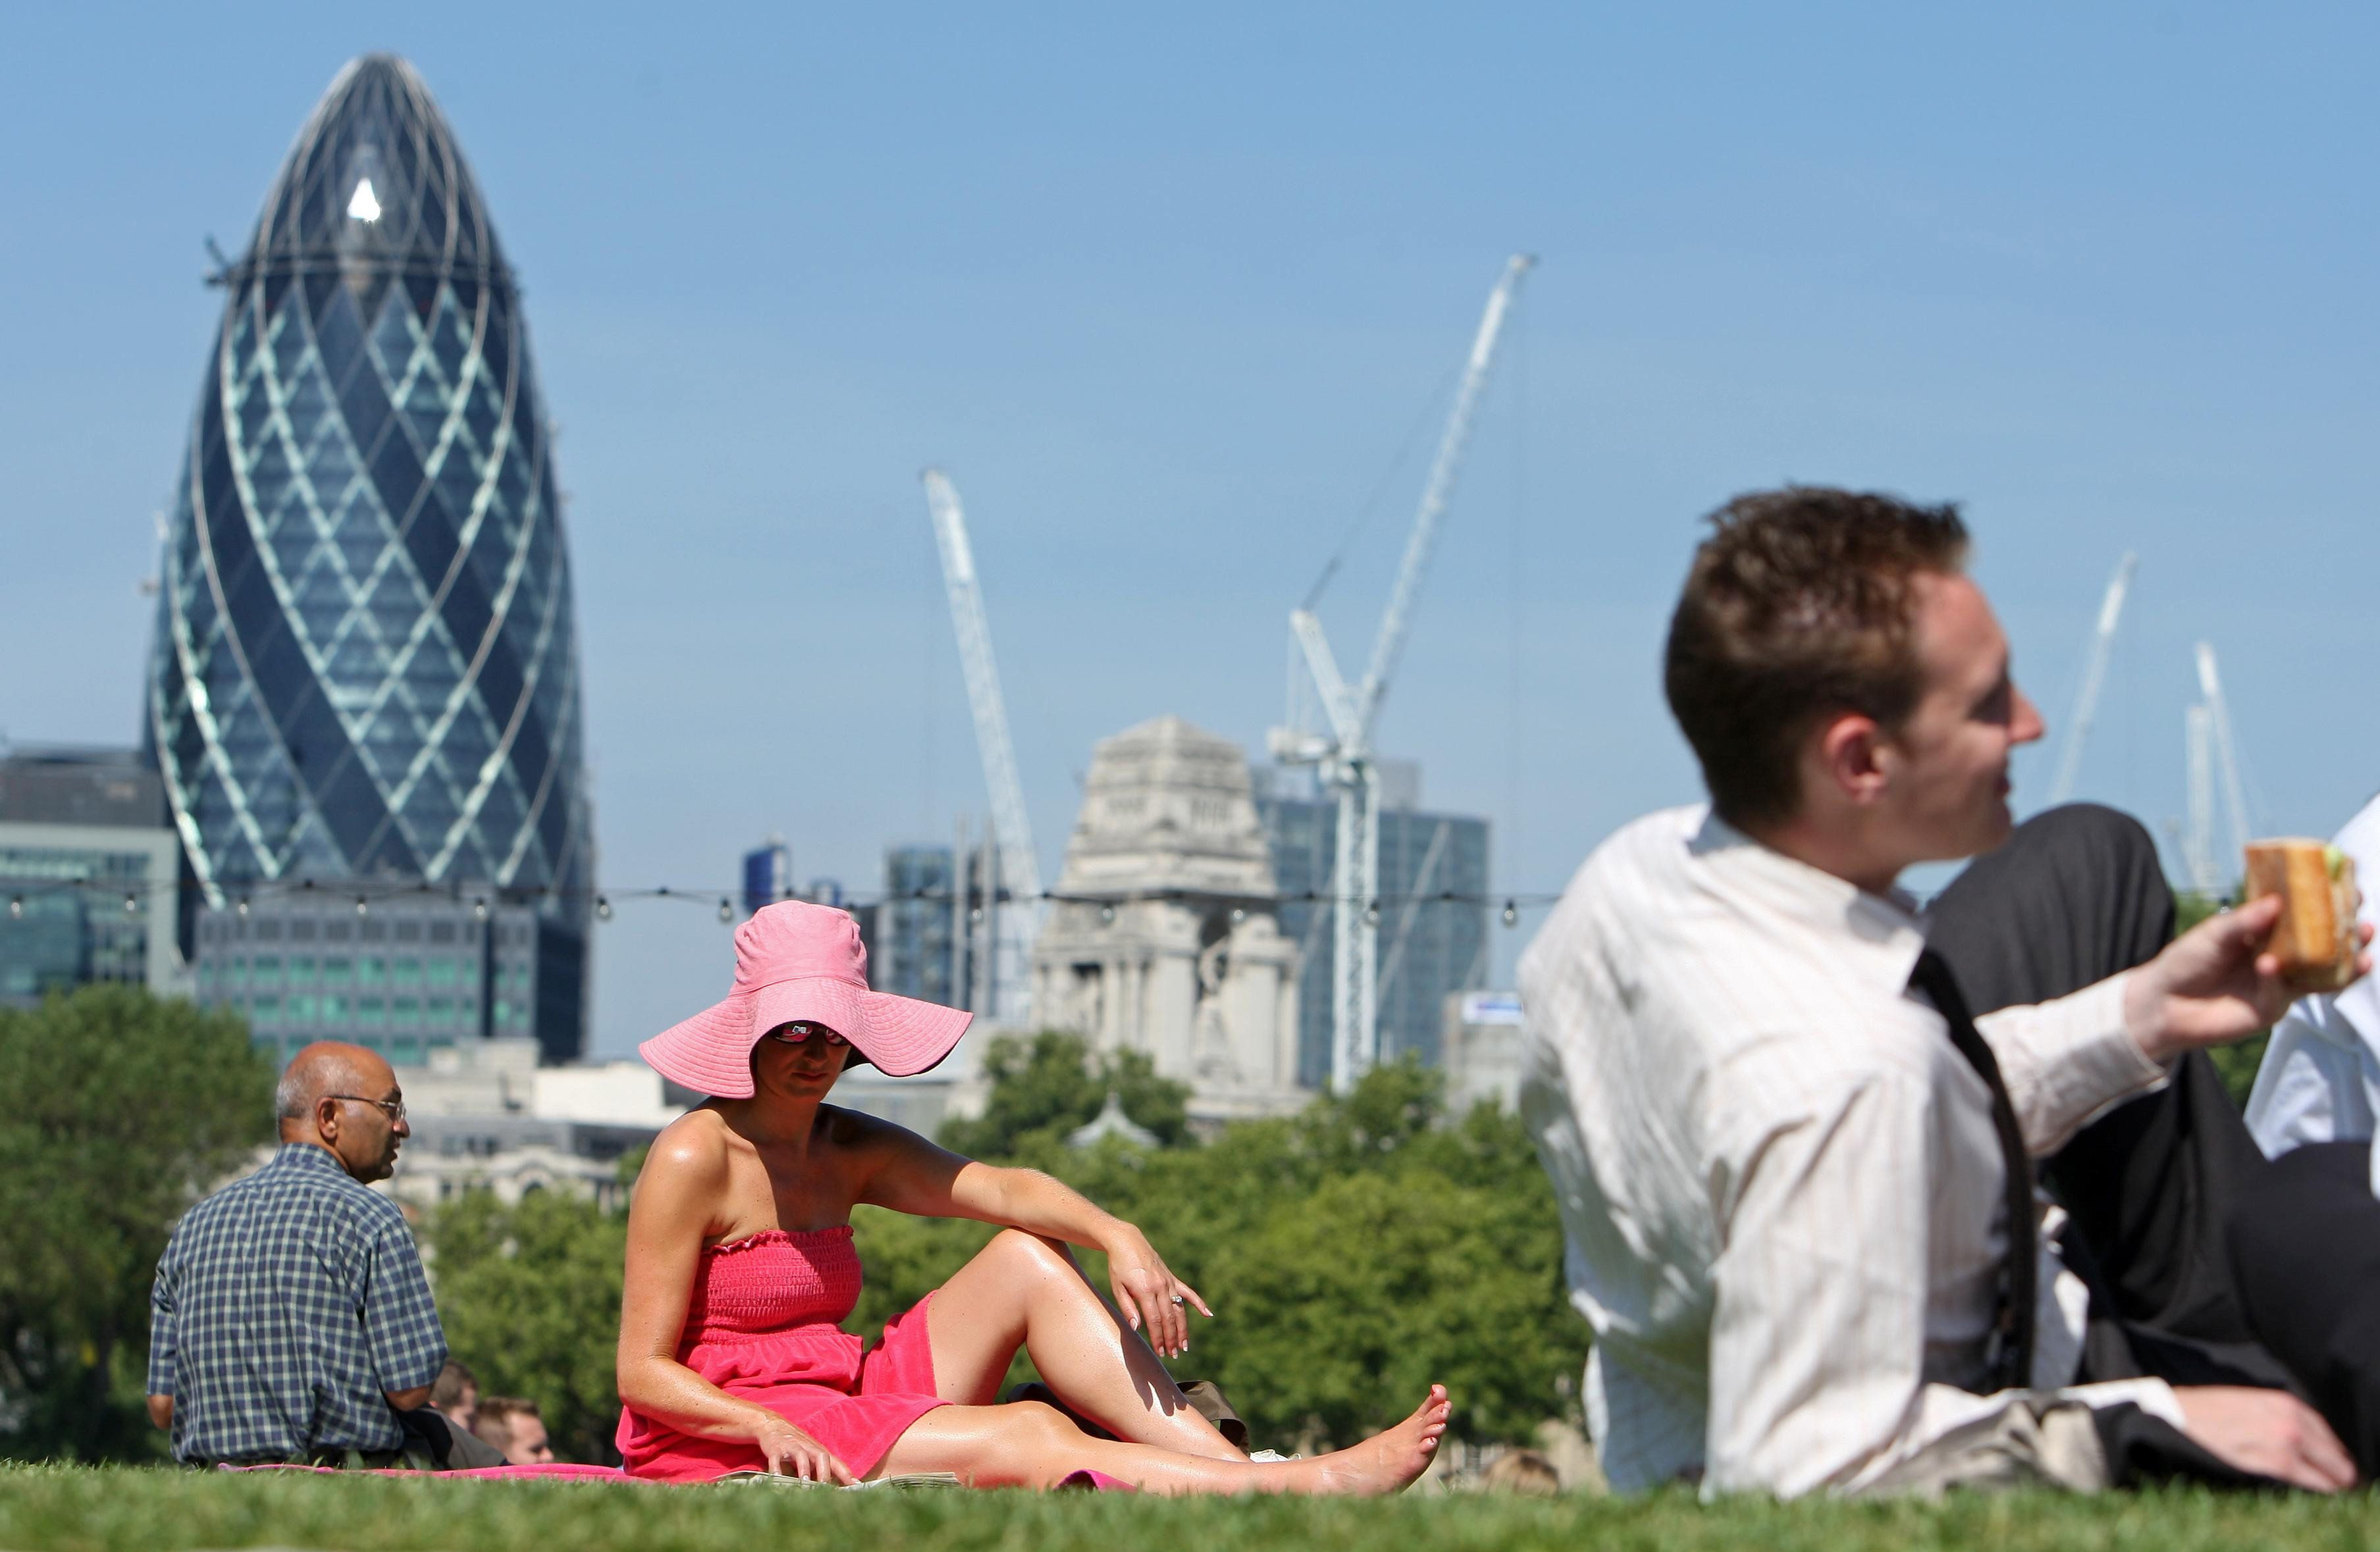 Temperatures in London are set to reach 25C this